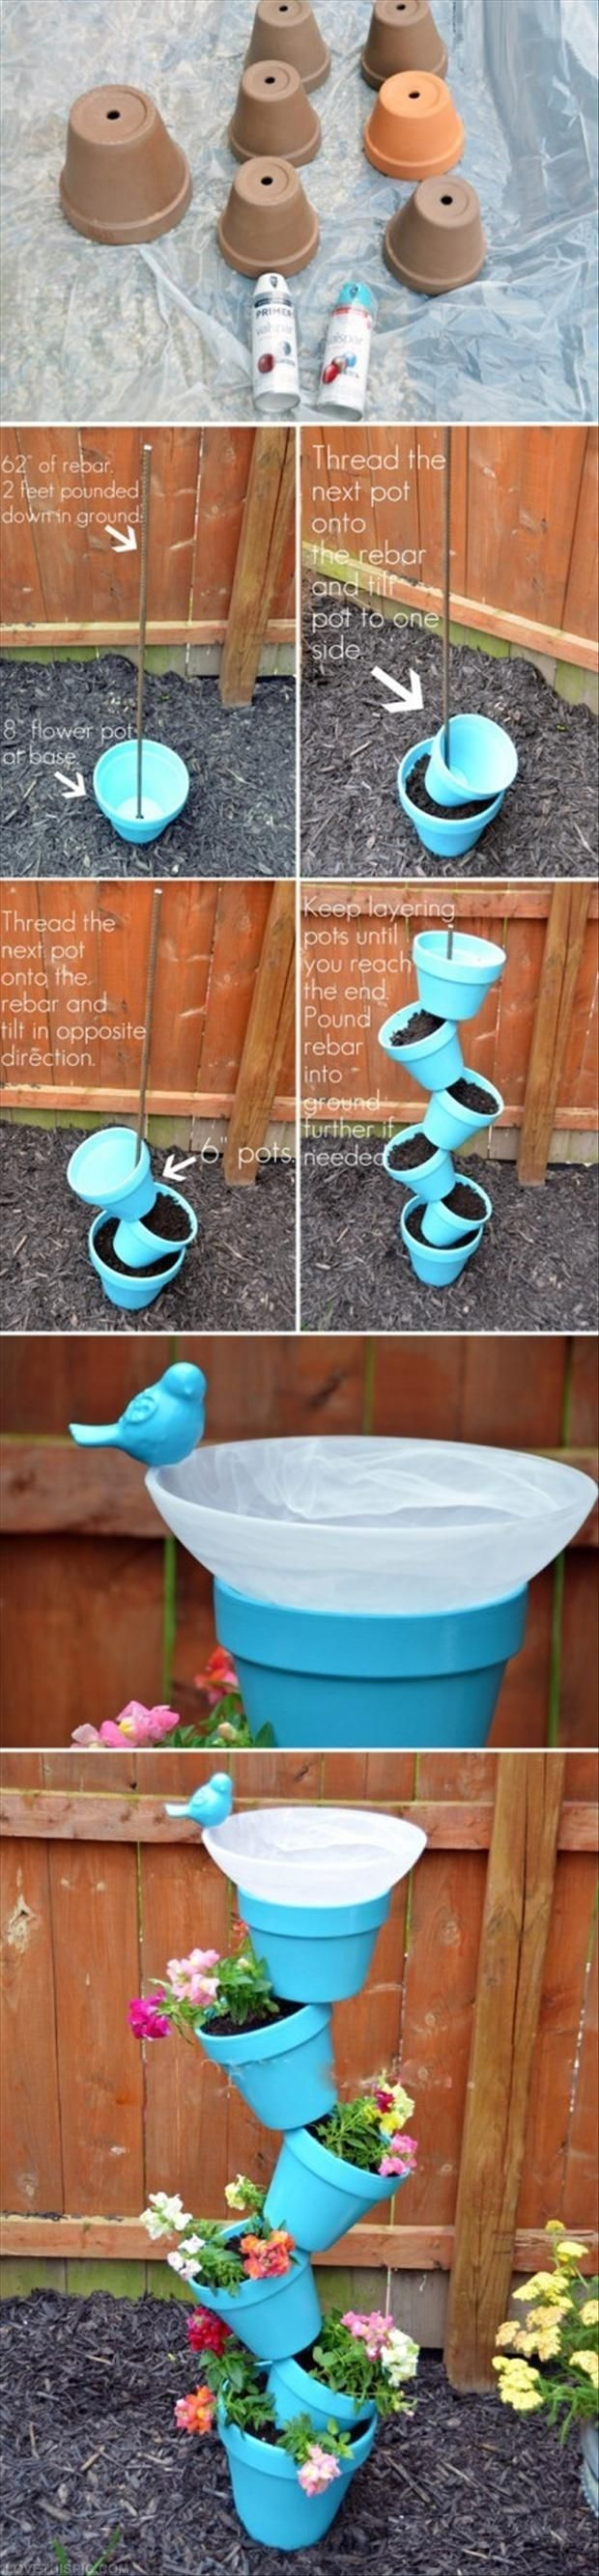 DIY Garden Pot Idea diy easy crafts diy ideas diy crafts diy idea do it yourself diy tips easy crafts diy photos home crafts easy diy craft ideas diy gardening diy garden garden crafts garden decoration